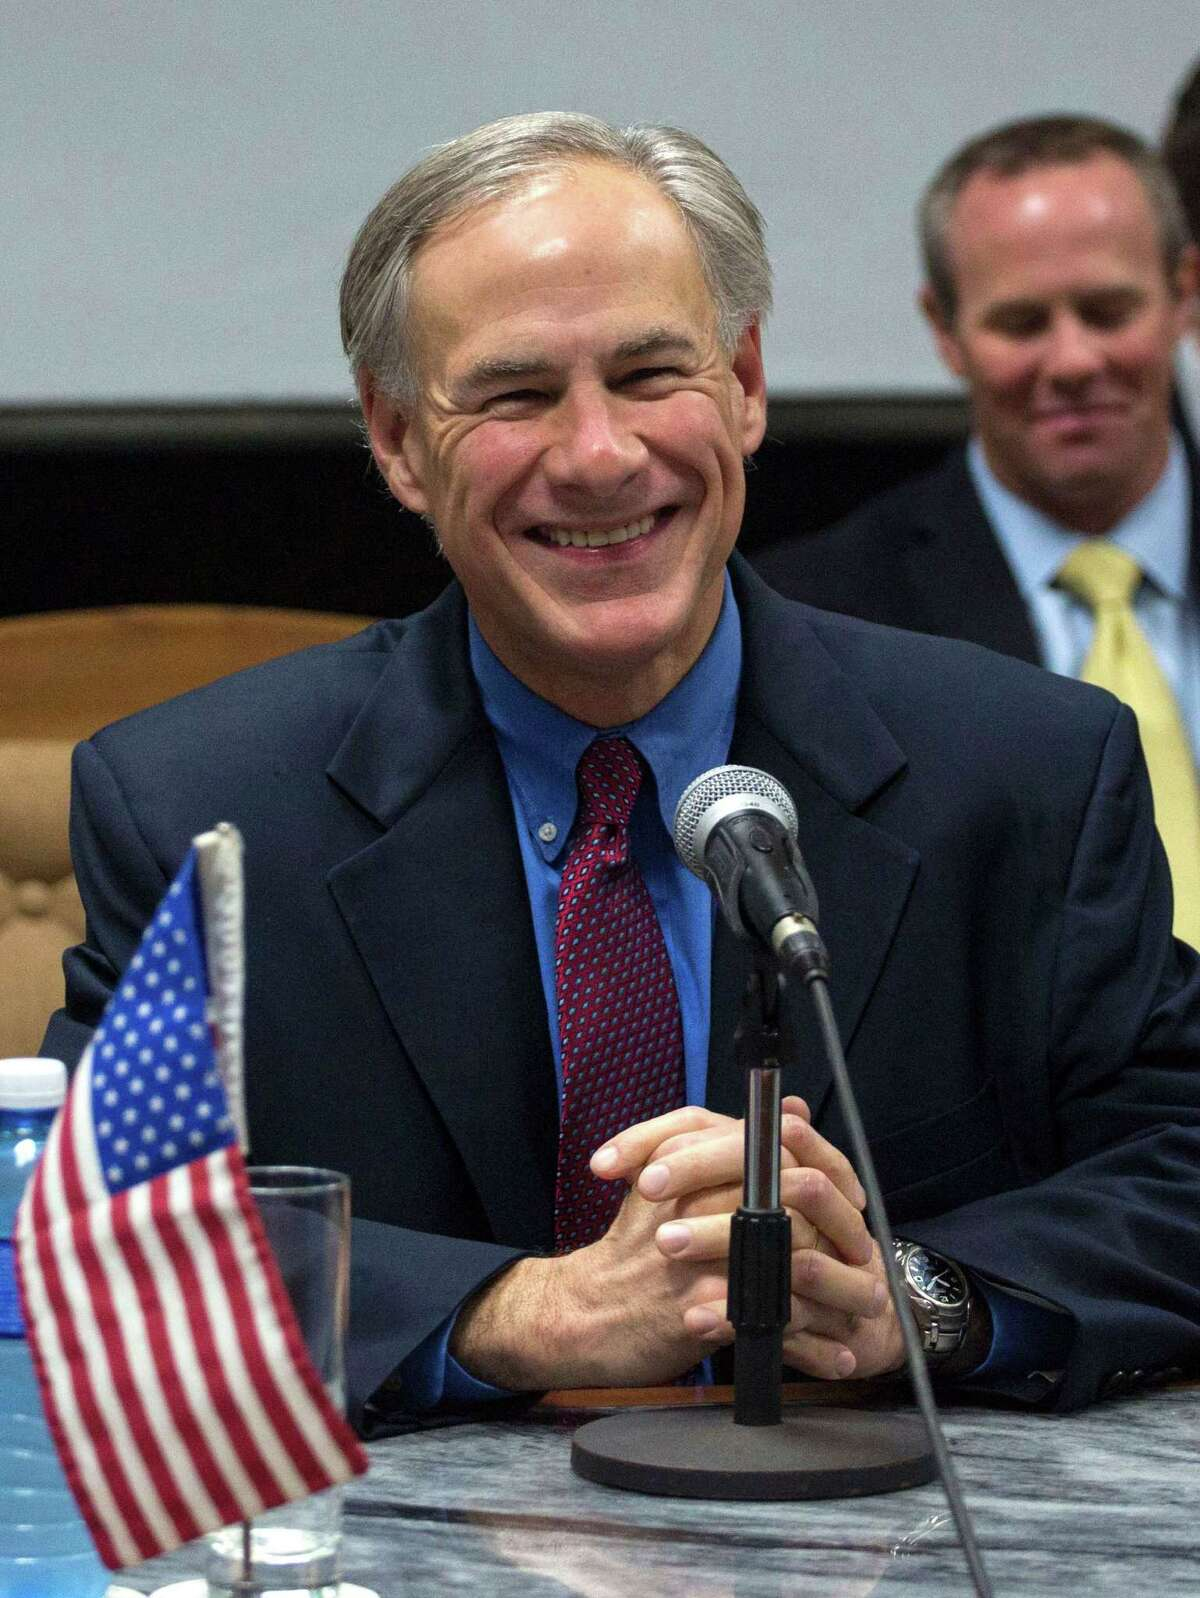 Out-of-state travel costs for Gov. Greg Abbott's security detail came to nearly $175,000 as of Aug. 31, according to DPS reports.